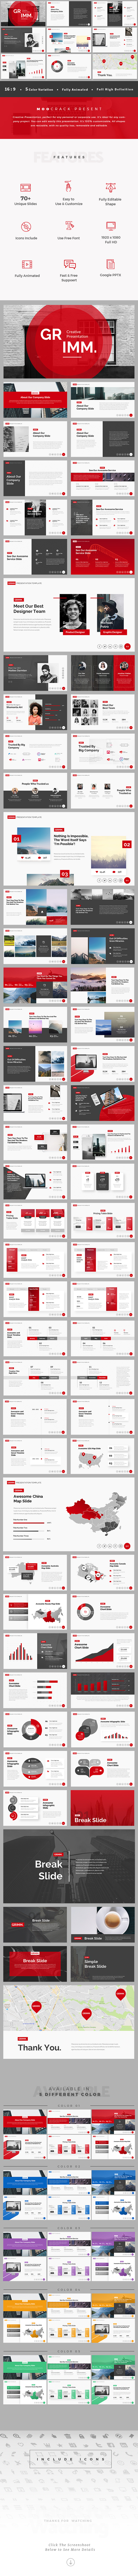 GraphicRiver Grimm Creative GoogleSlides Template 21145163